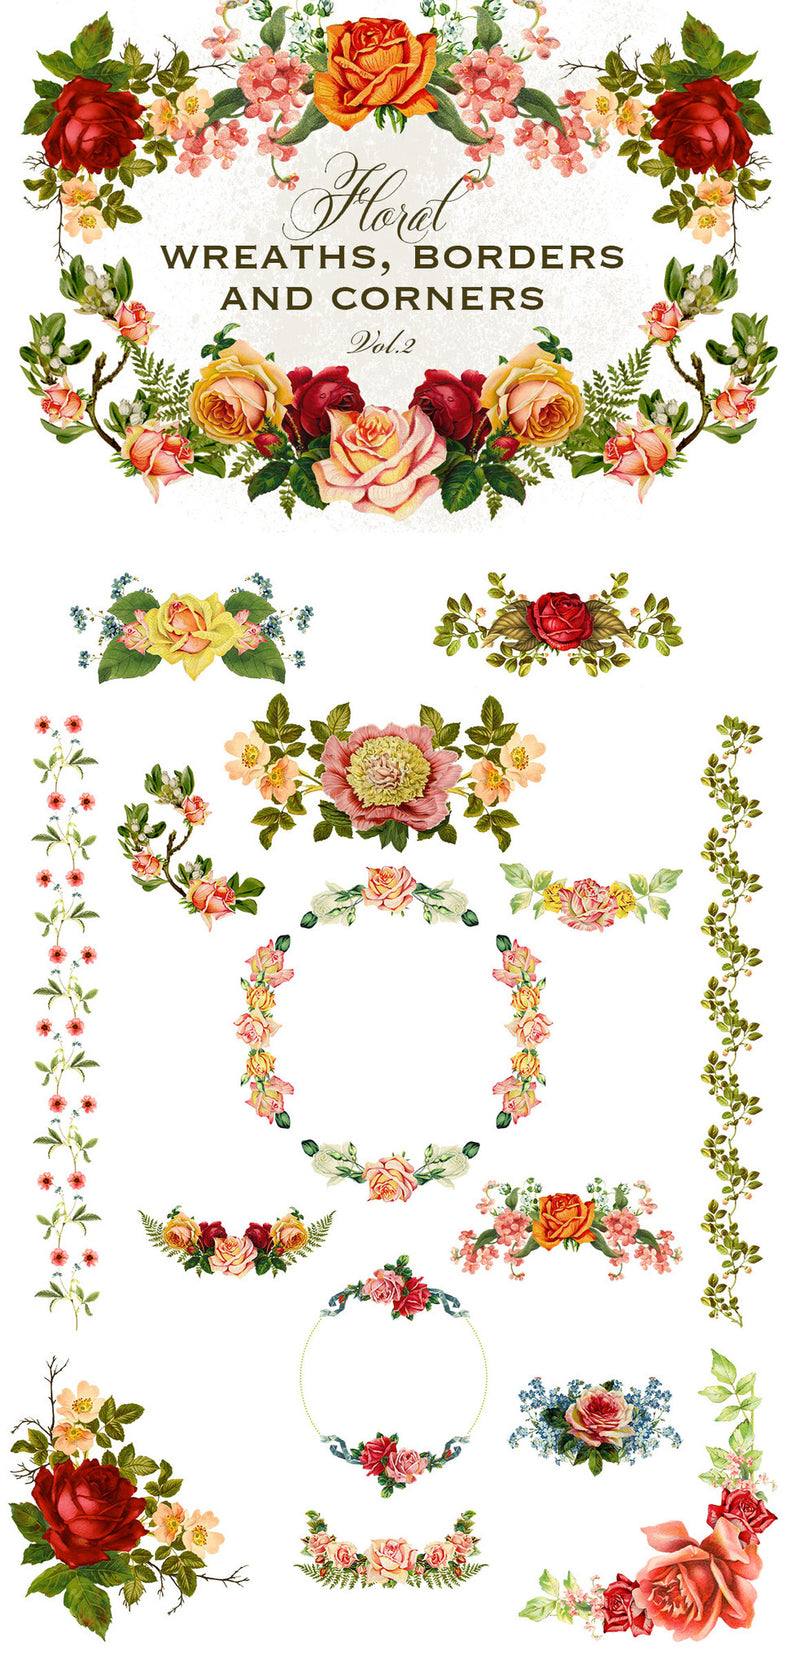 Floral Wreaths, Borders and Corners Vol. 2